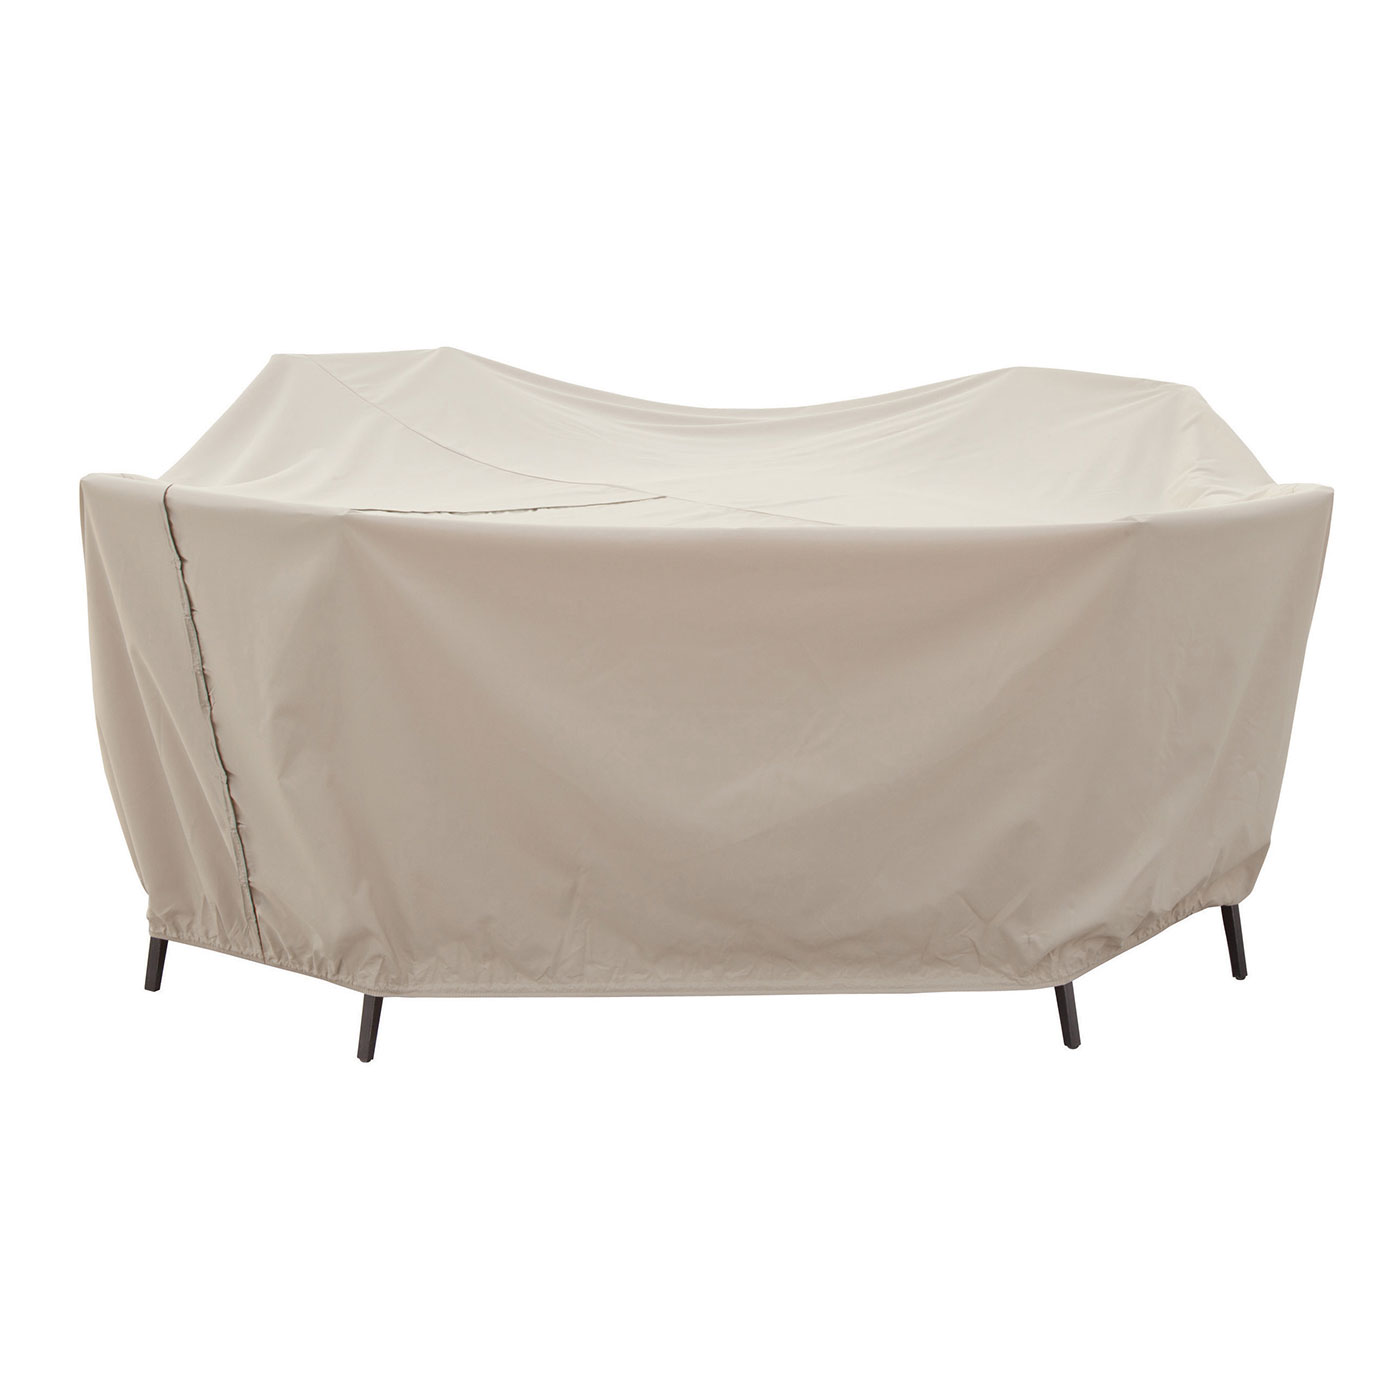 60 Round Patio Table Cover With Umbrella Hole